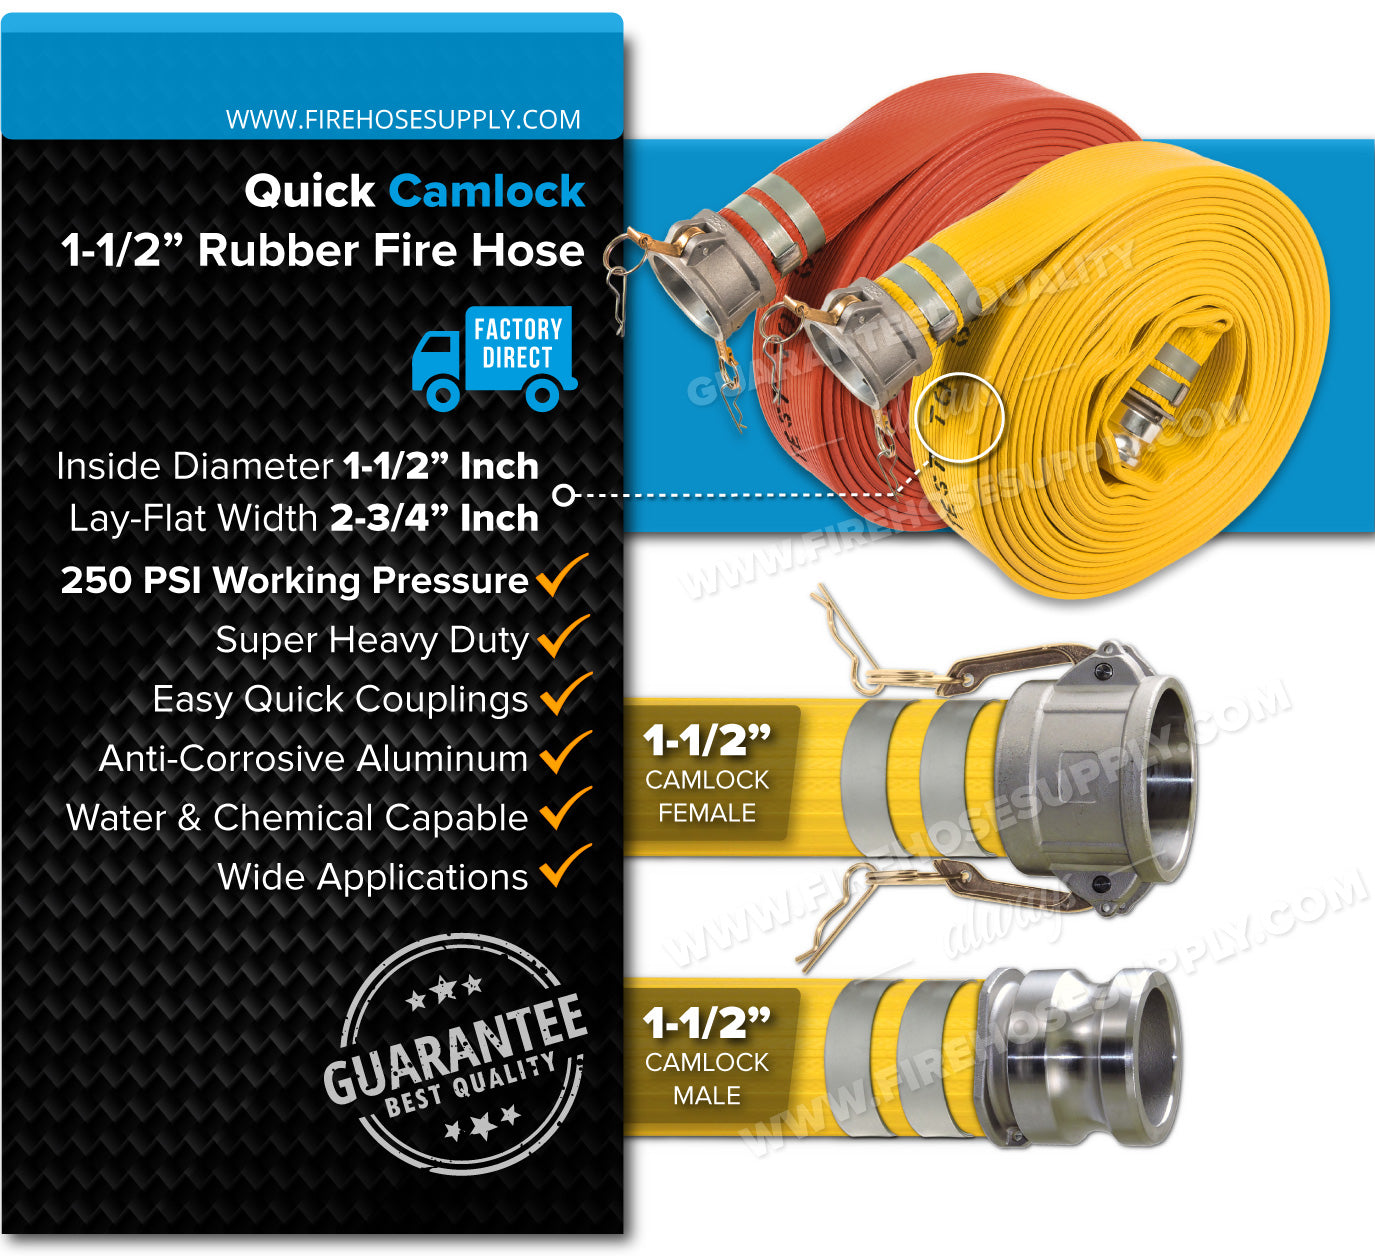 1-1-2 Inch Rubber Nitrile Camlock Fire Hose Overview